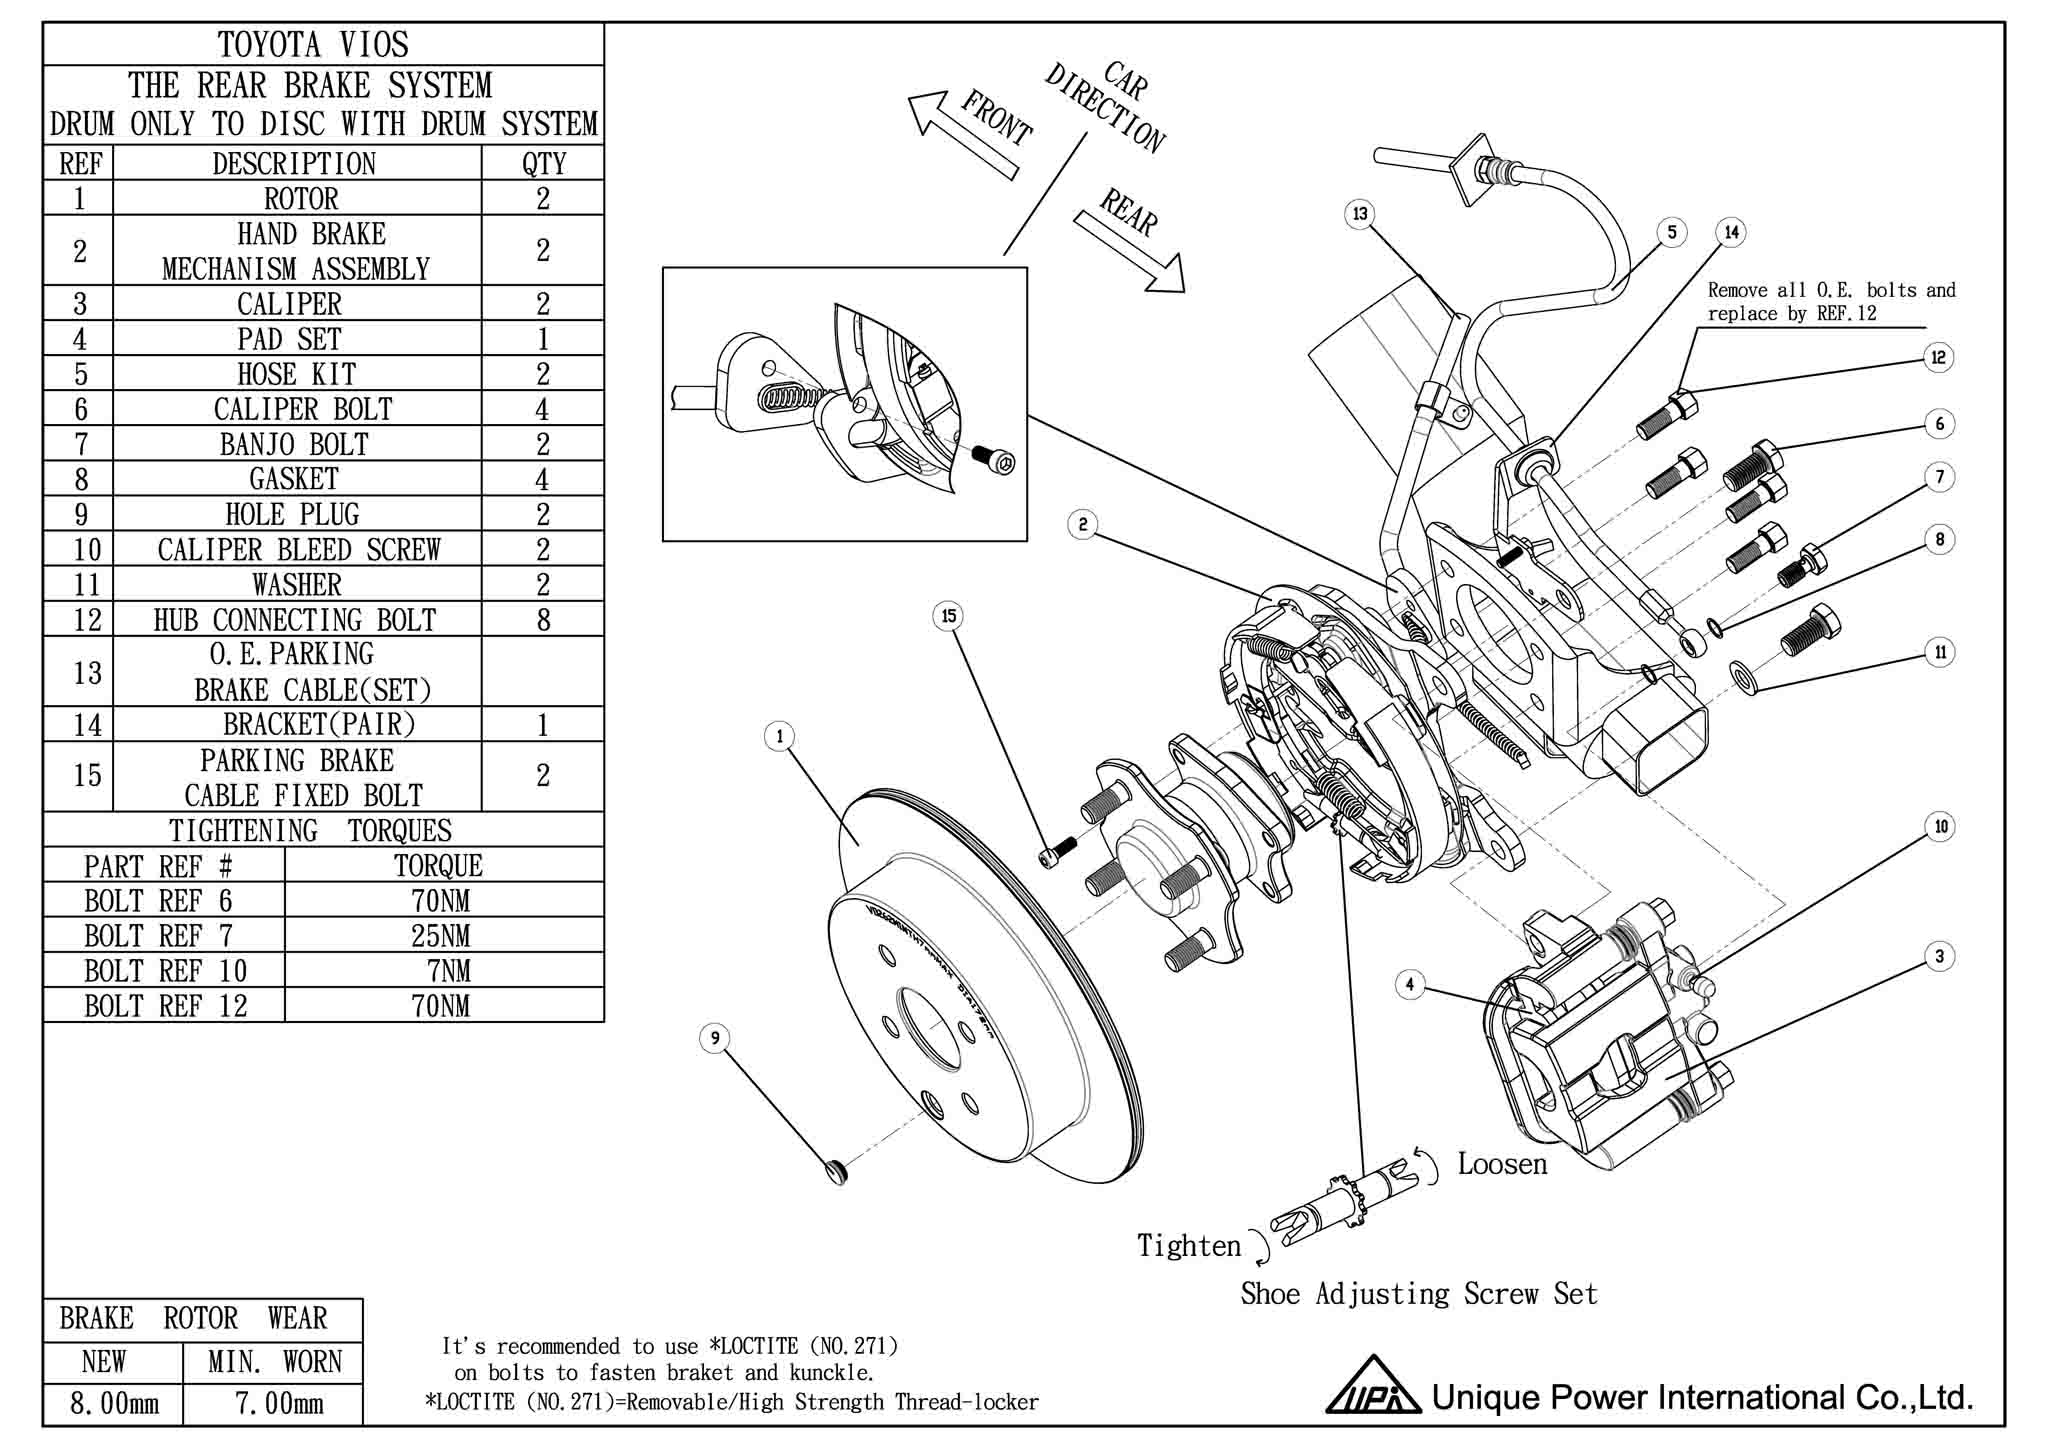 tags: #peterbilt 359 wiring schematic#peterbilt transmission diagram#wiring  diagrams for peterbilt trucks#1996 peterbilt 379 wiring diagram#peterbilt  379